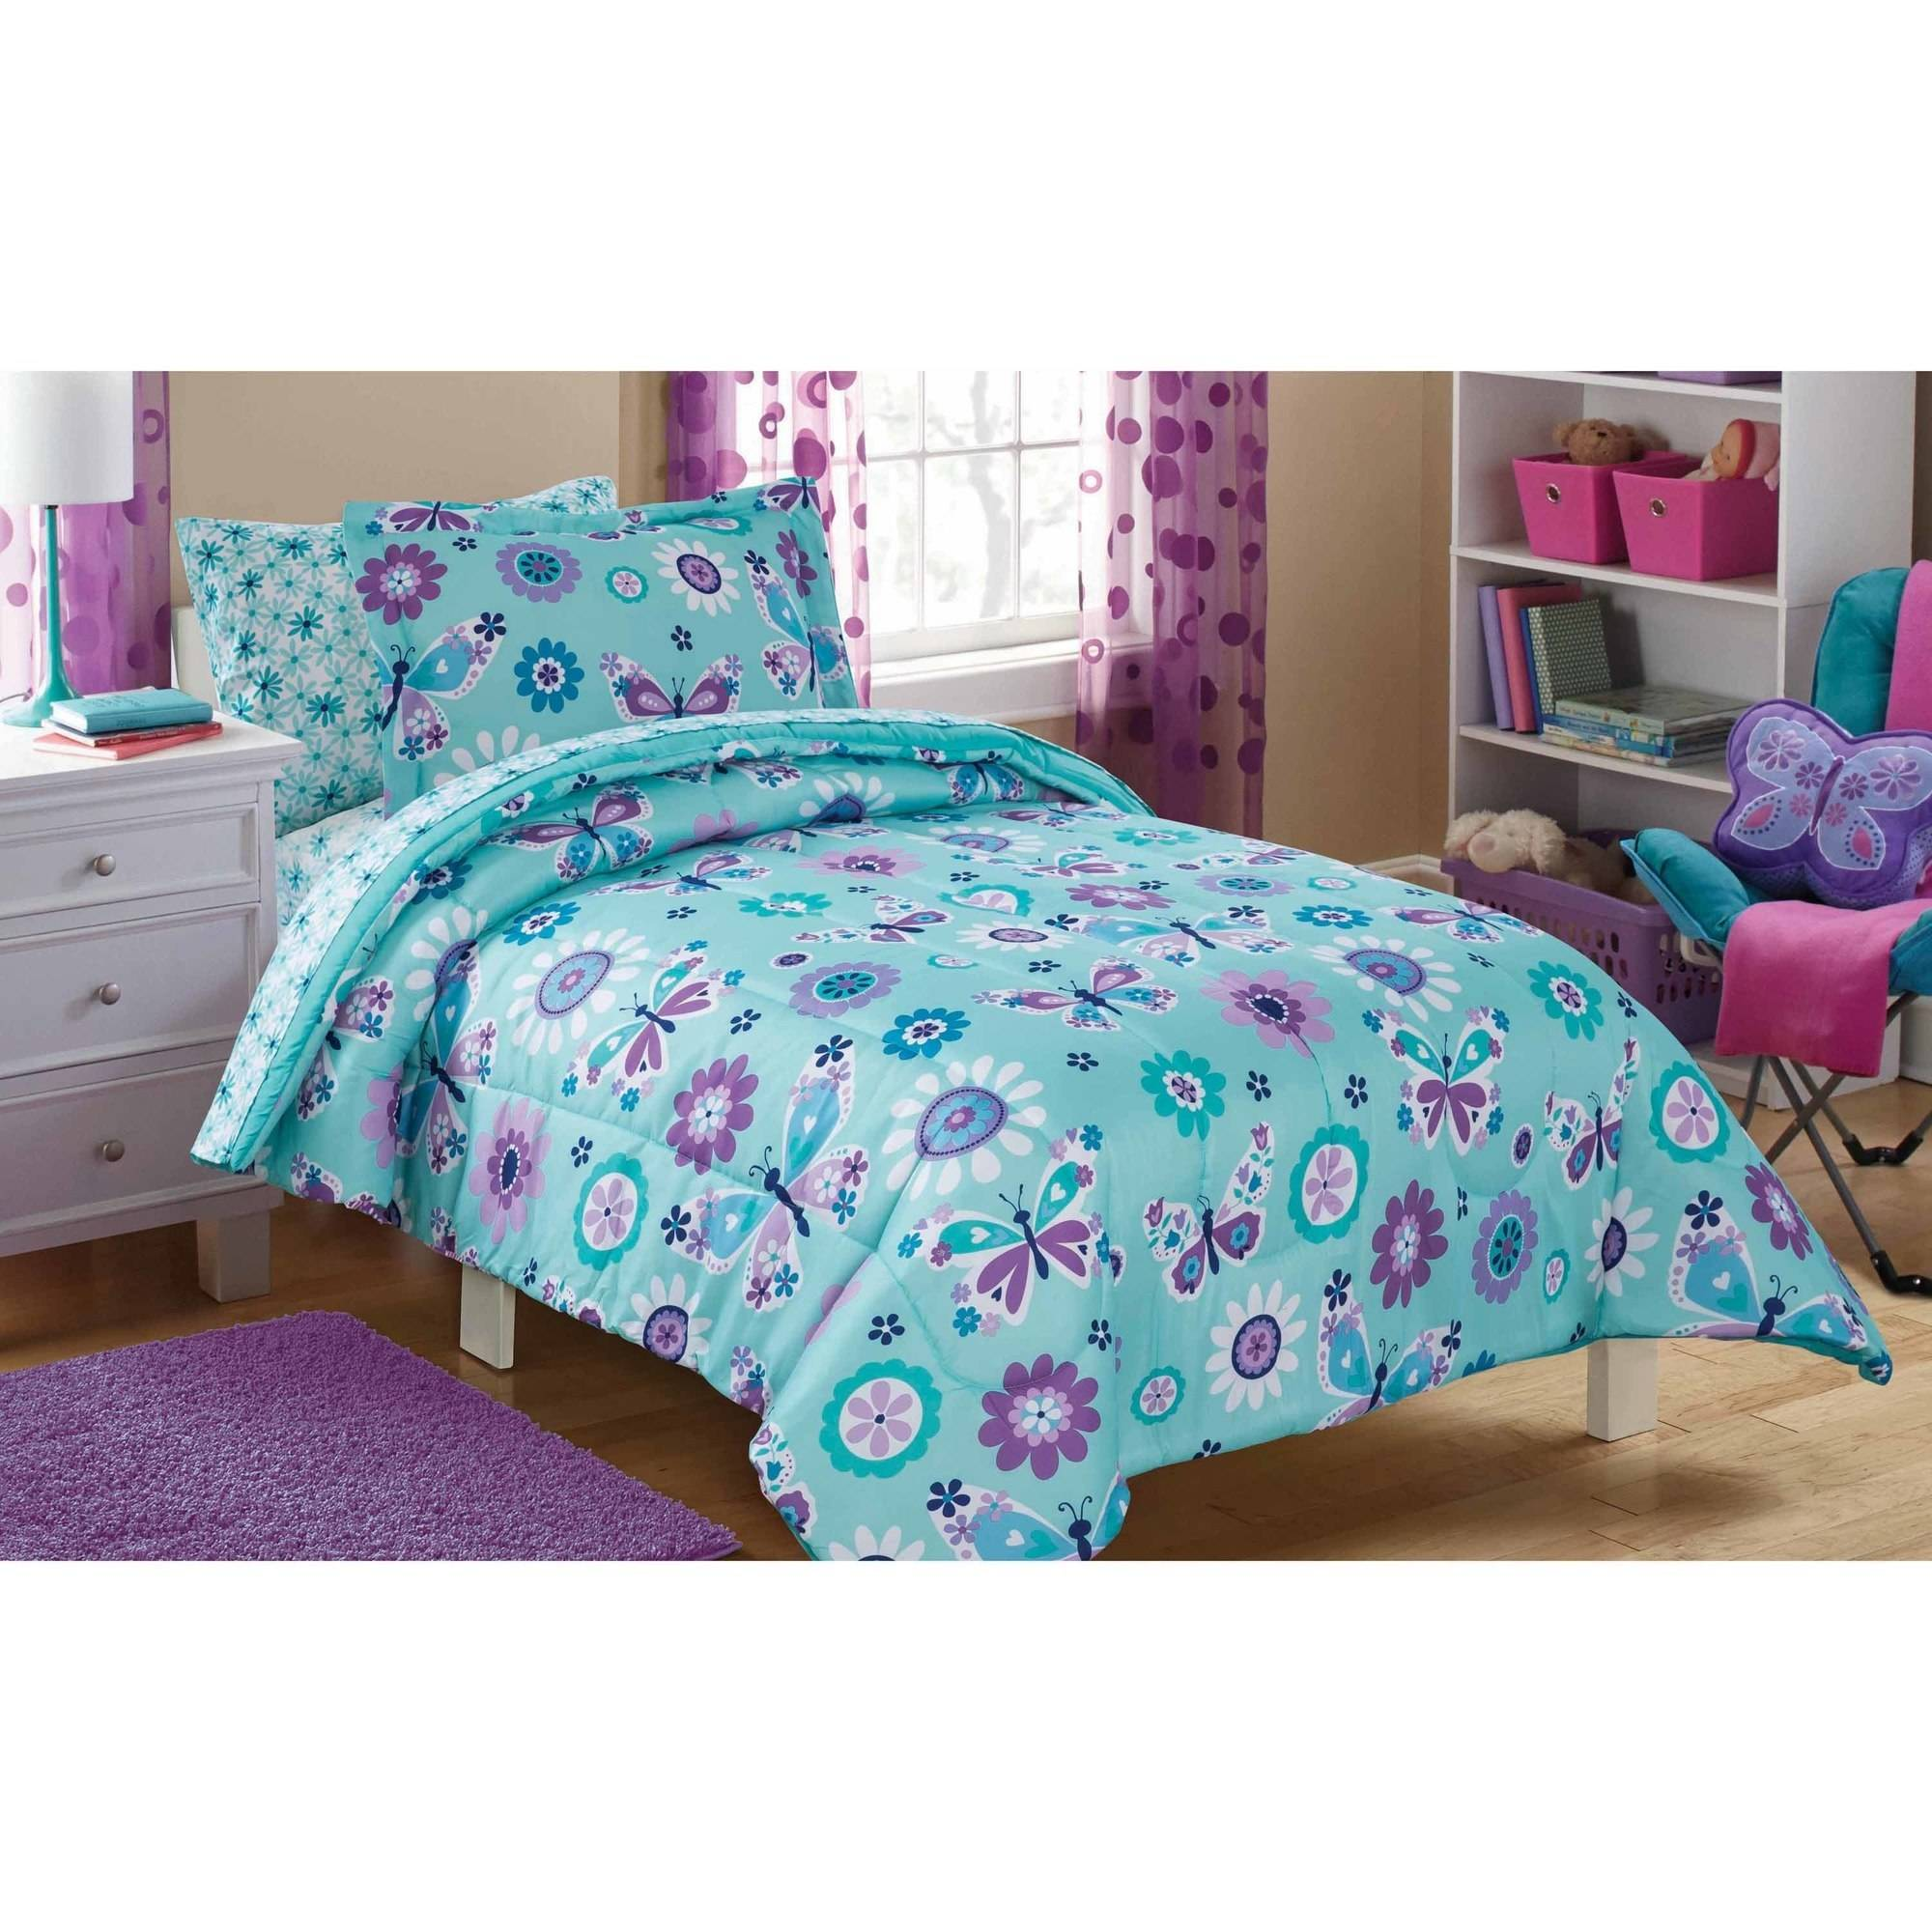 bed sets walmart mainstays butterfly floral bed in a bag bedding set 10262